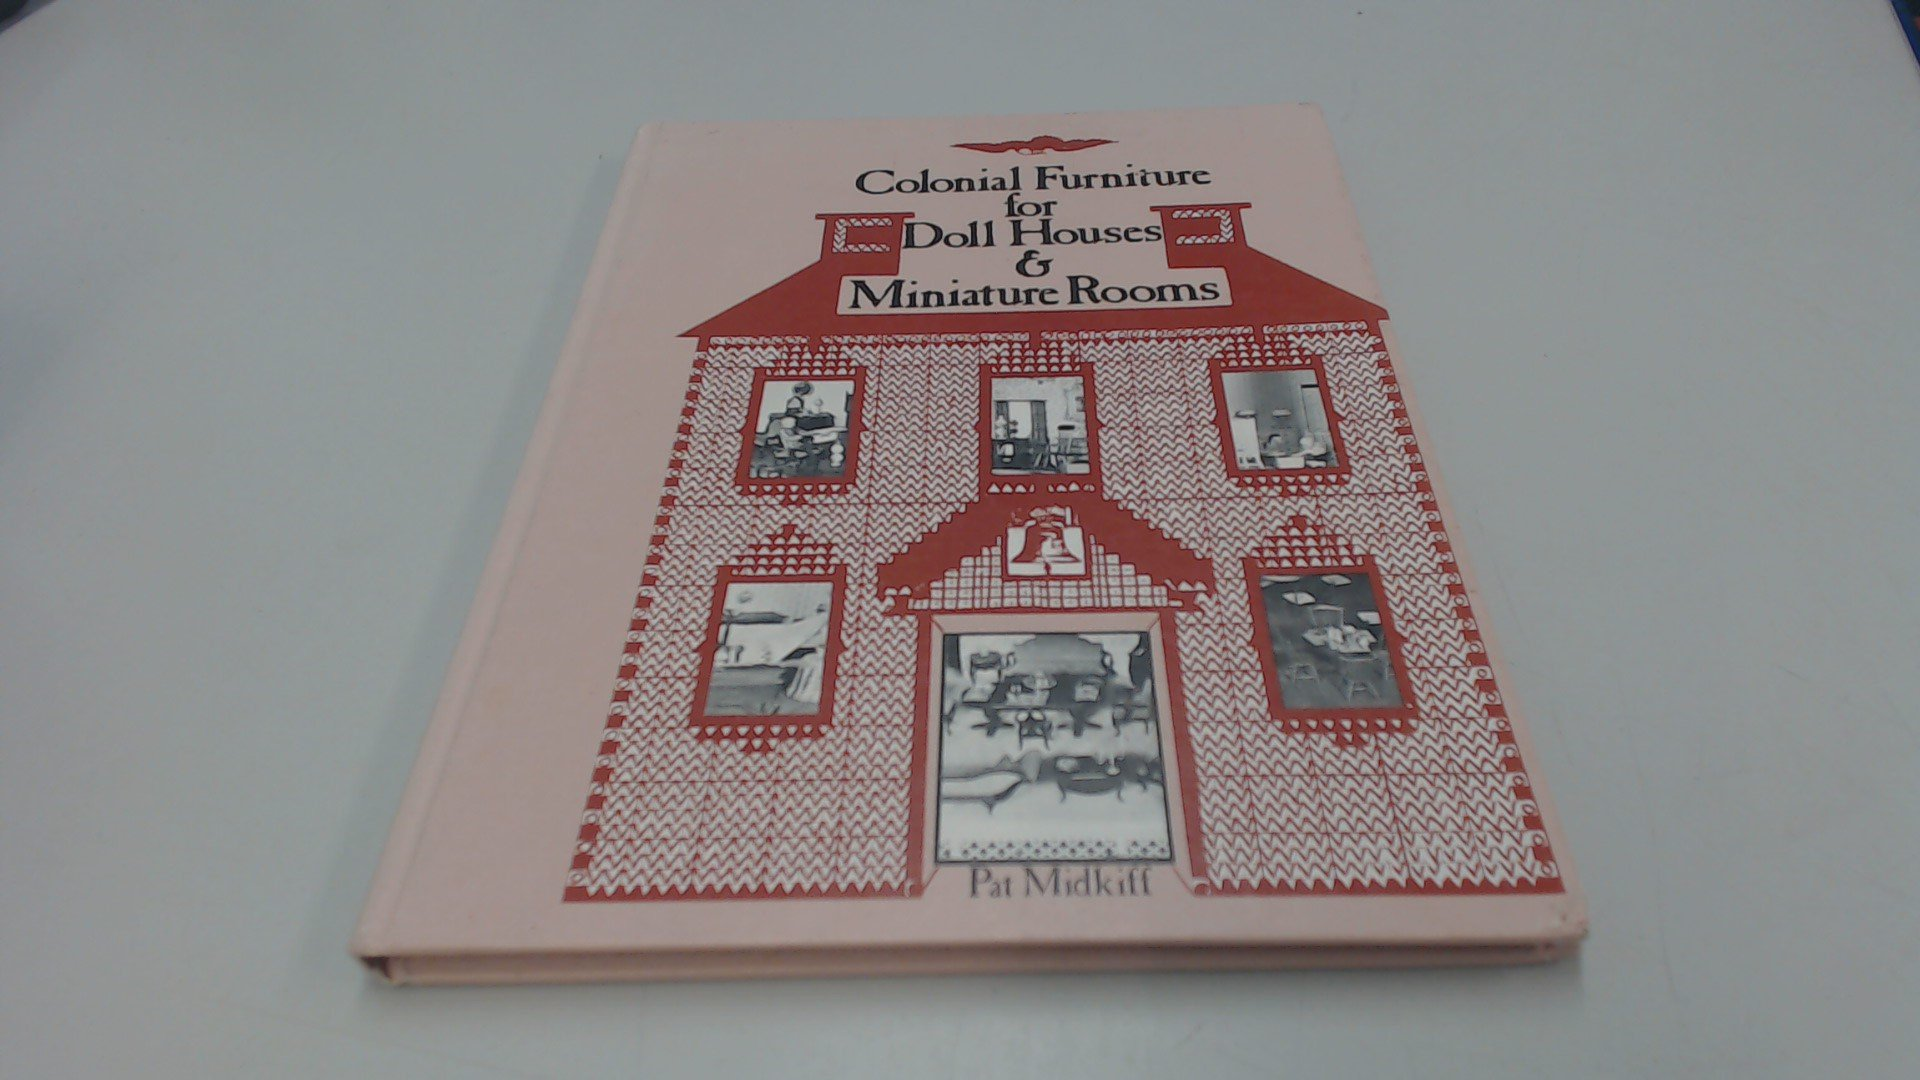 Colonial furniture for doll houses & miniature rooms: Pat Midkiff: 9780847314058: Amazon.com: Books